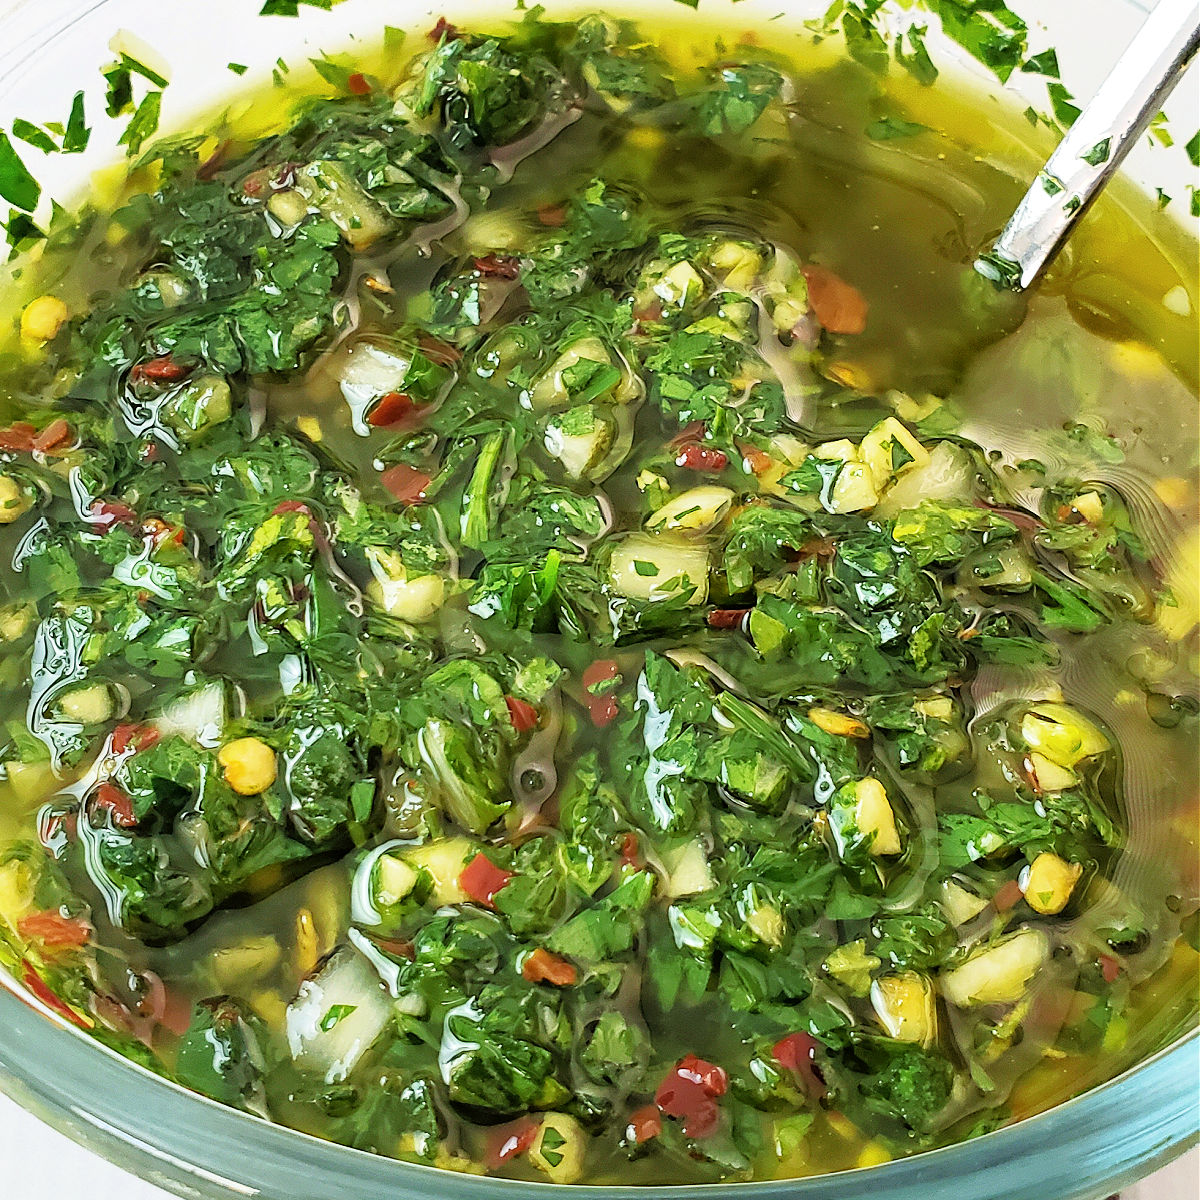 Overhead view of pint sized mason jar with a spoon dipped into the Chimichurri sauce